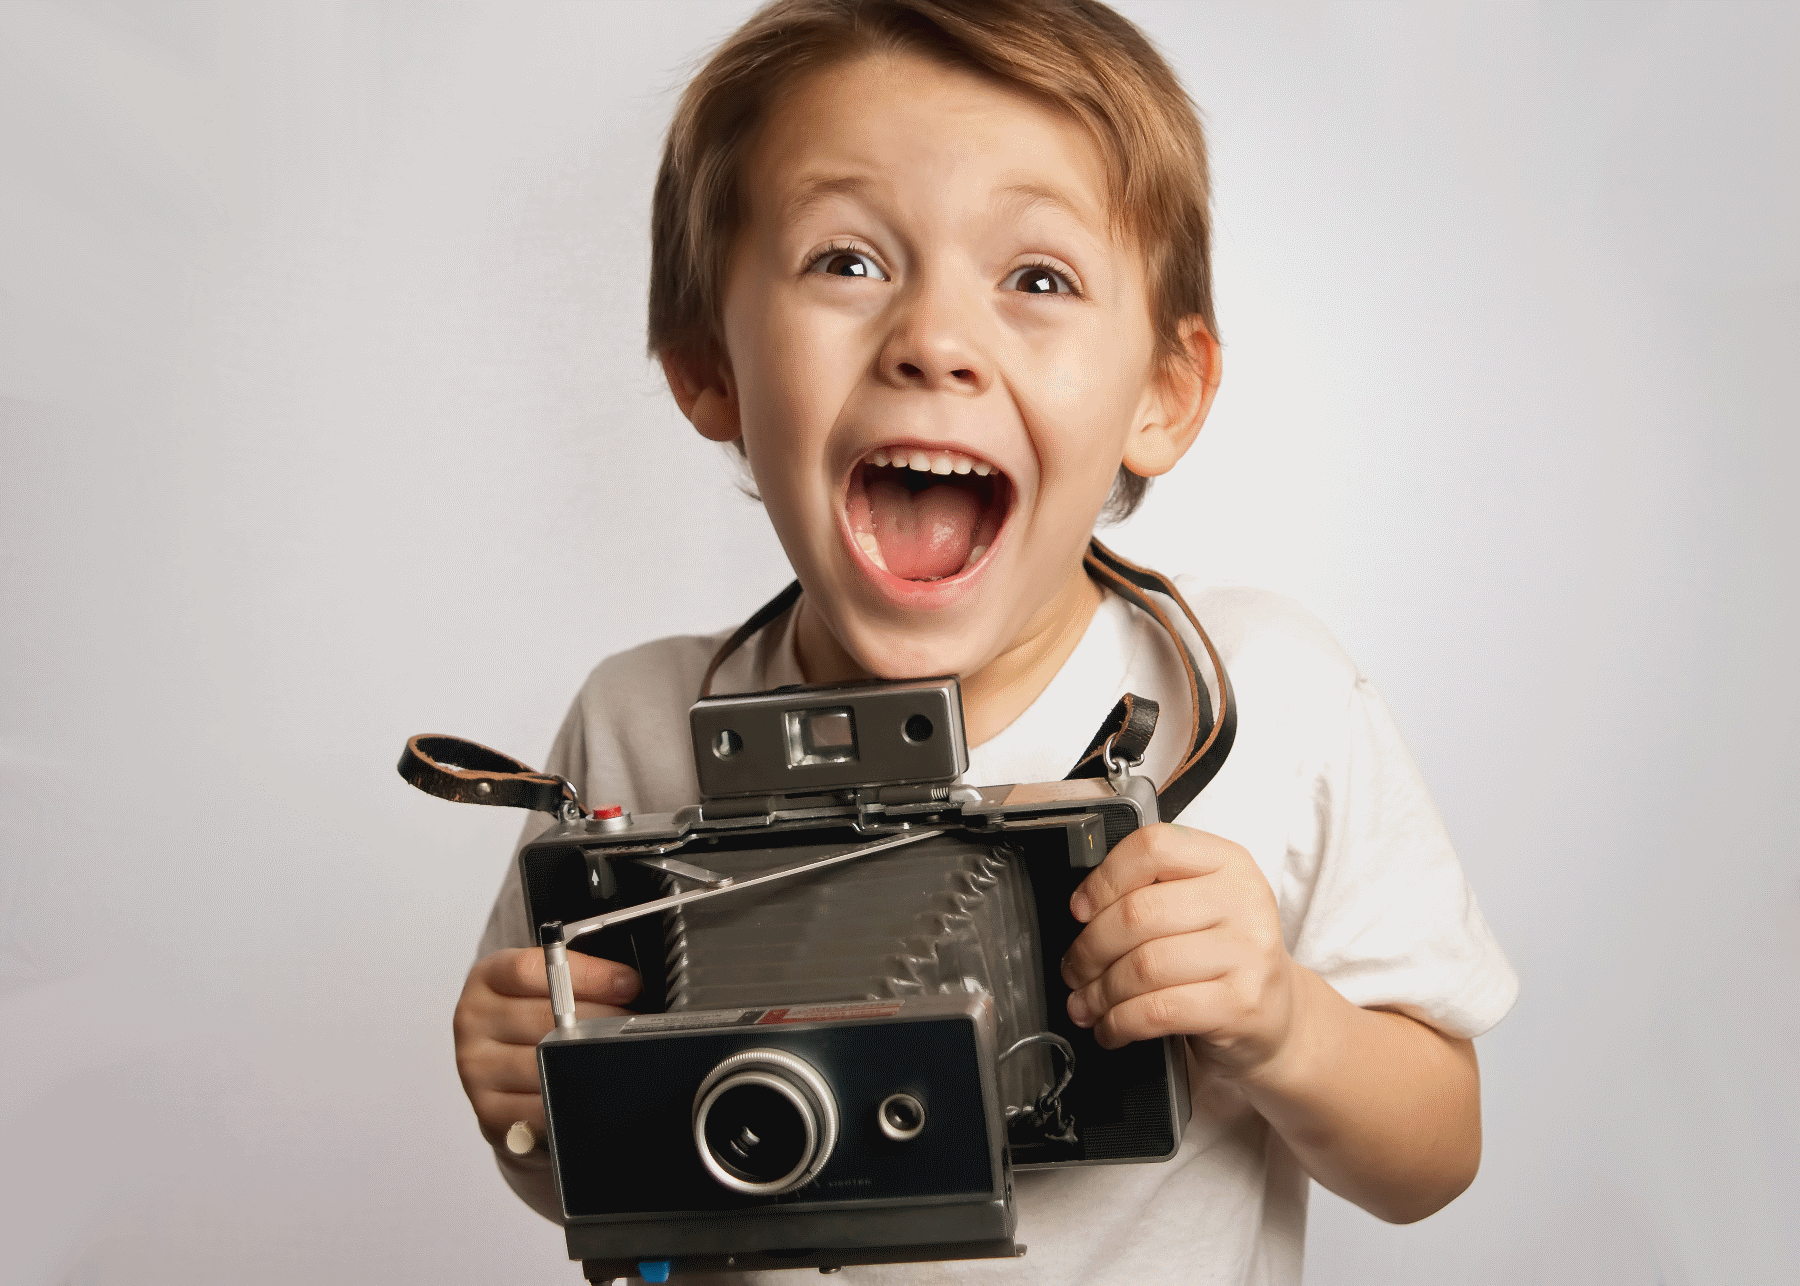 small child with camera with laughing face